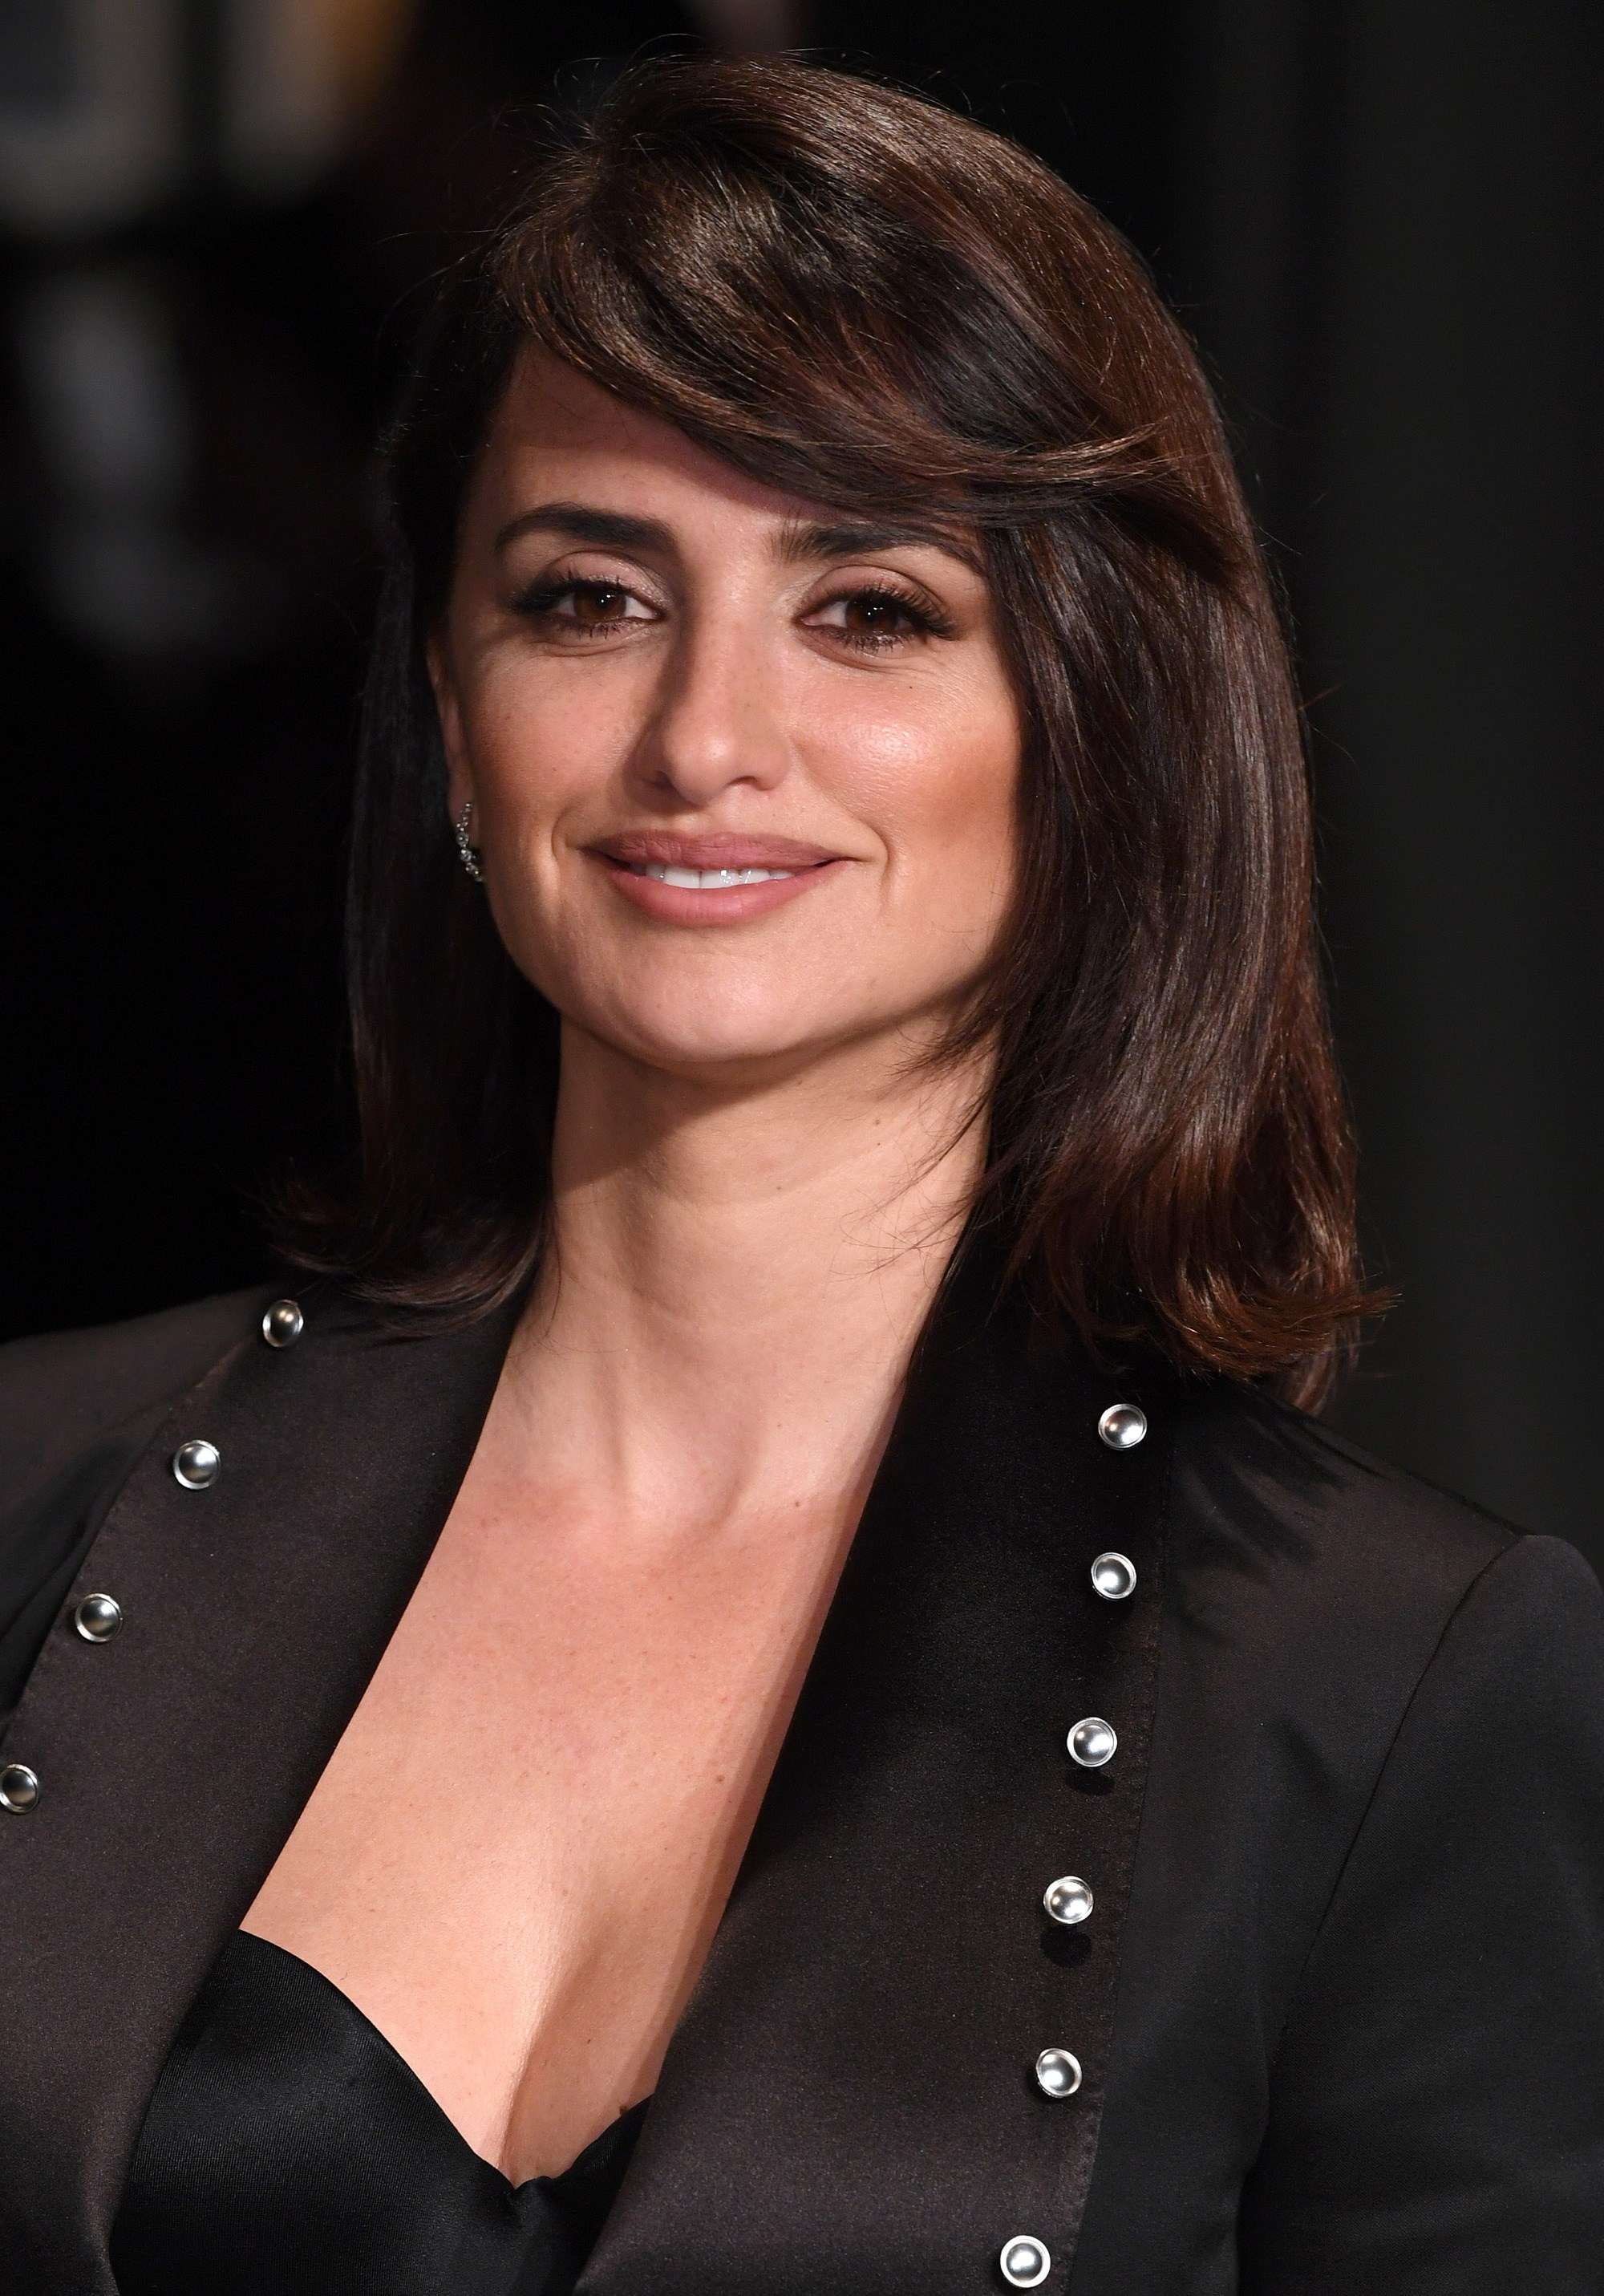 actress penelope cruz with shoulder length hair and flicky side bangs